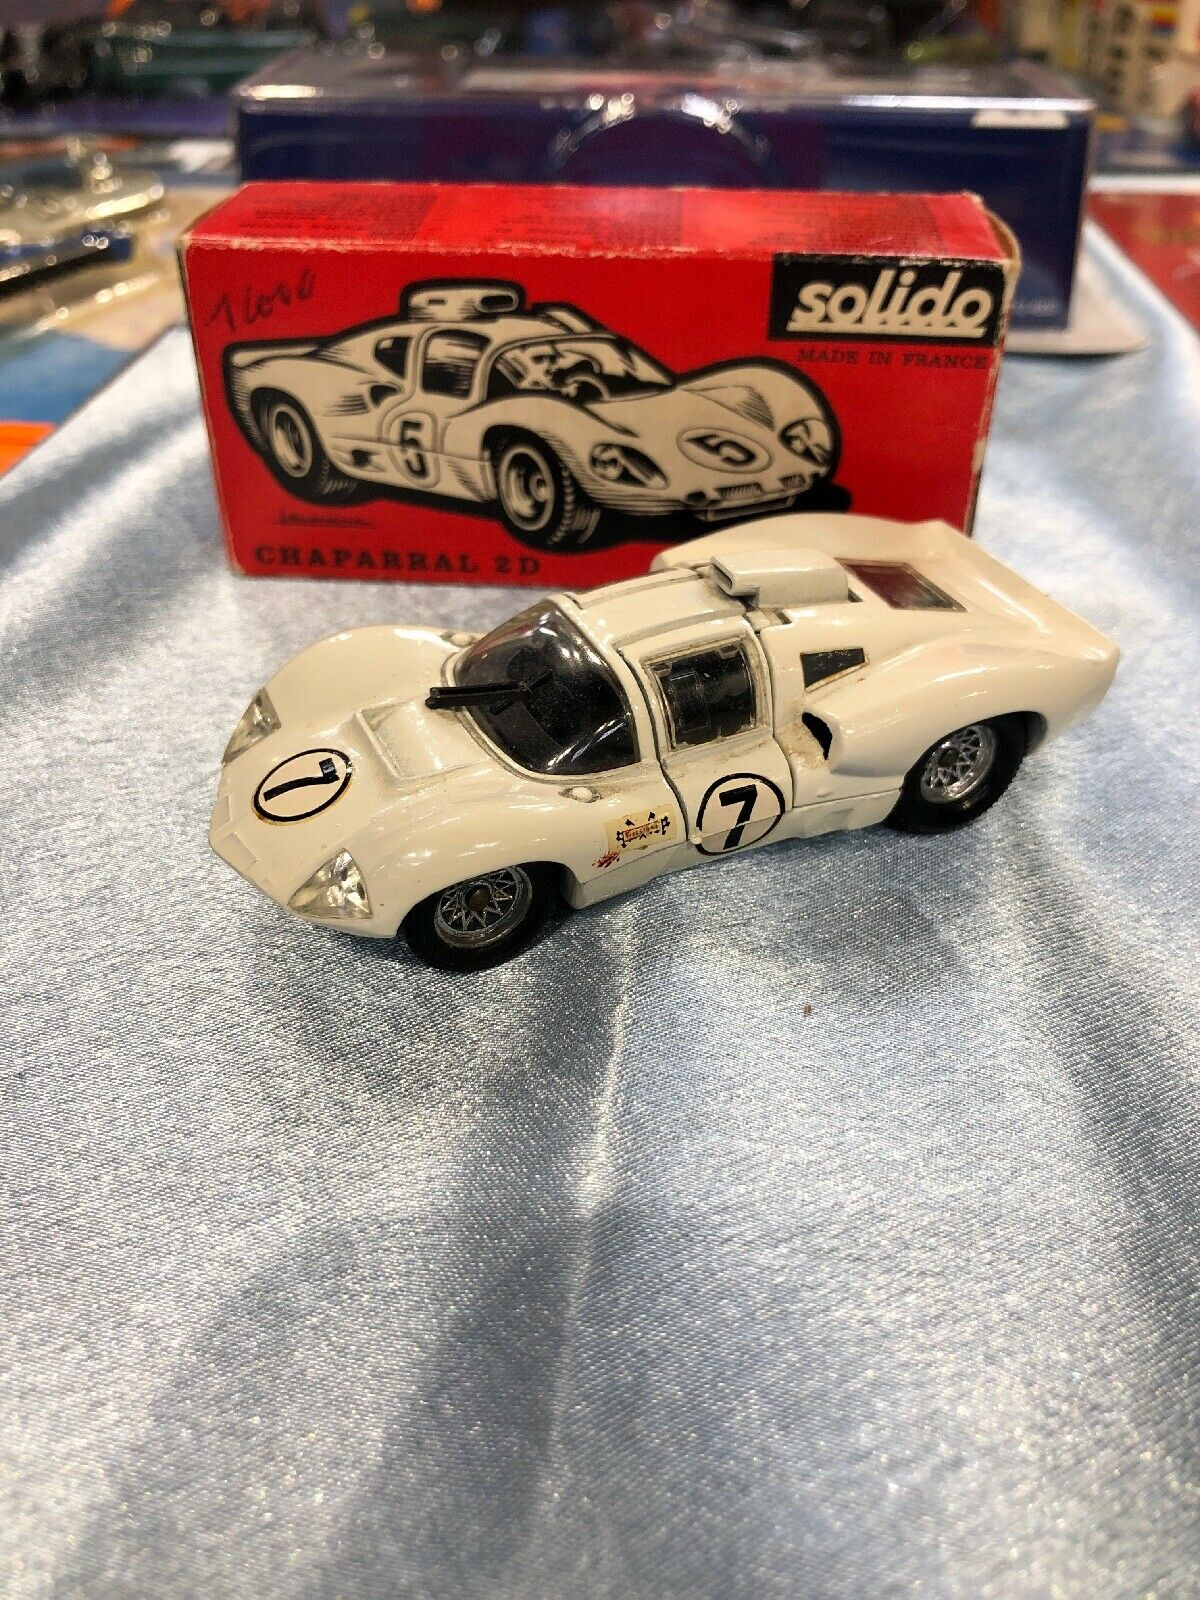 Solido 153 Chapparal 2D Near Mint